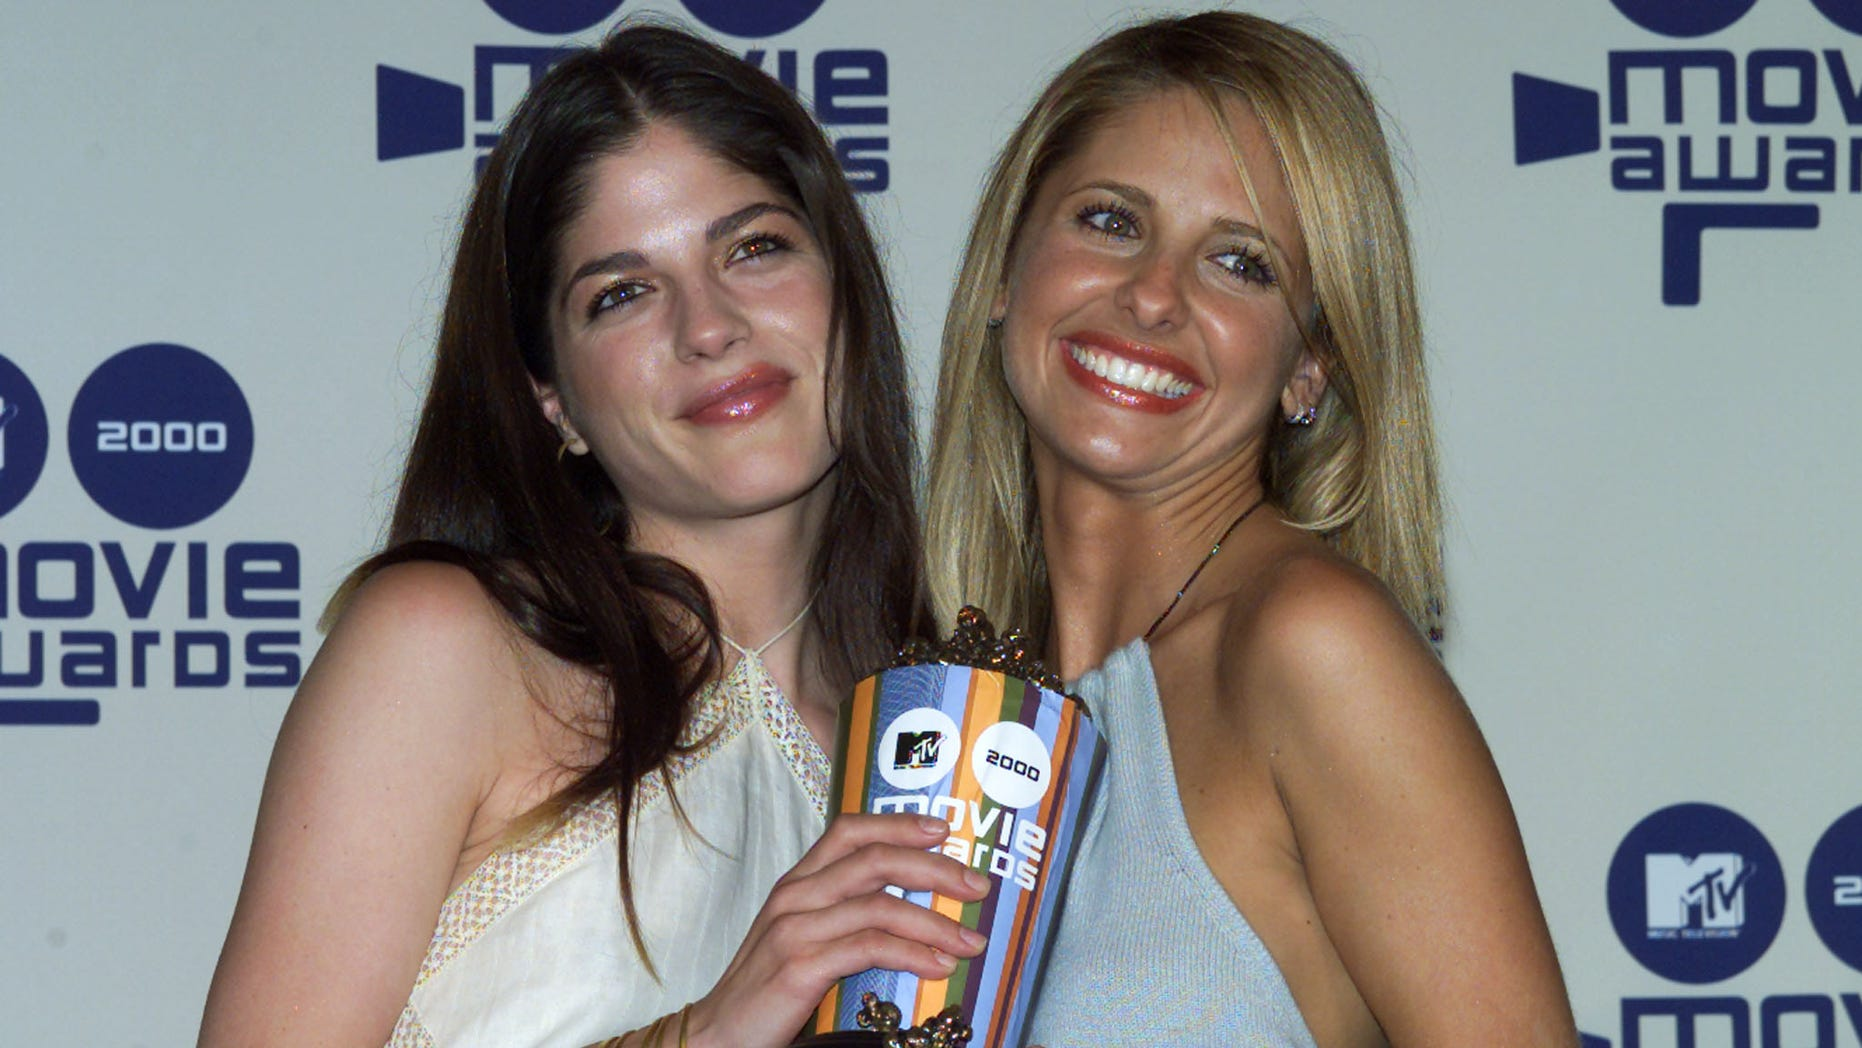 """Actresses Selma Blair (L) and  Sarah Michelle Gellar, co-stars of the film """"Cruel Intentions"""" pose with their award for Best Screen Kiss at the 2000 MTV Movie Awards taping, June 3 in Los Angeles. The awards show will be telecast on the MTV Network June 8 in the United States. - RTXJS64"""